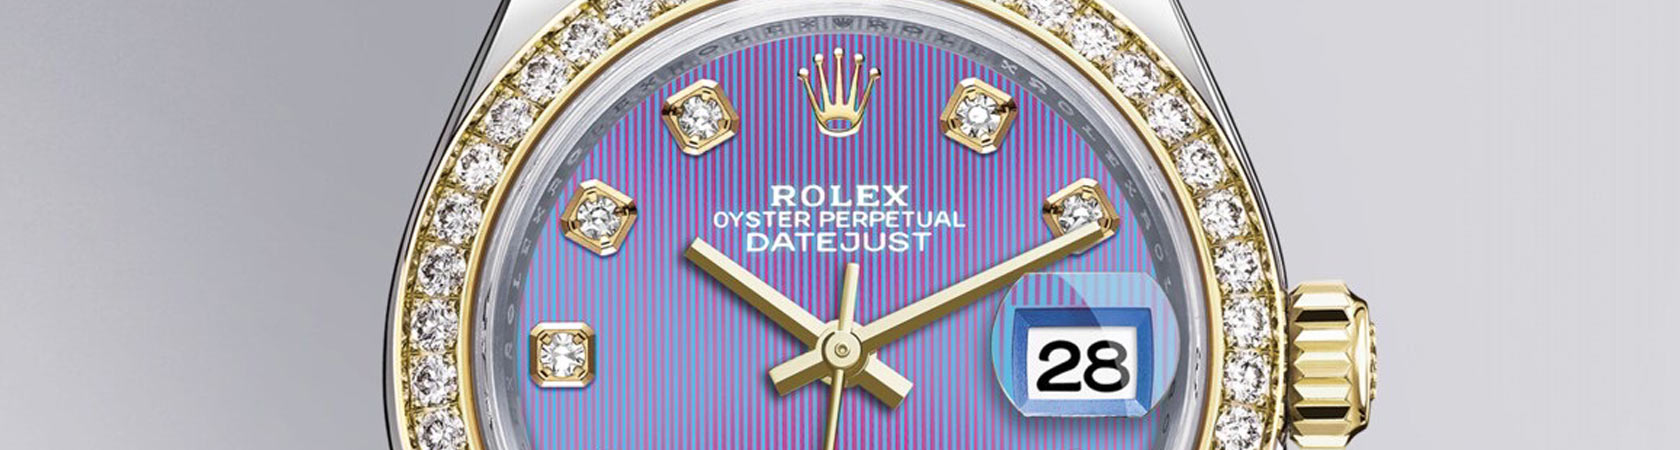 Rolex Oyster Perpetual Lady-Datejust 28 in Yellow Rolesor - Kee Hing Hing